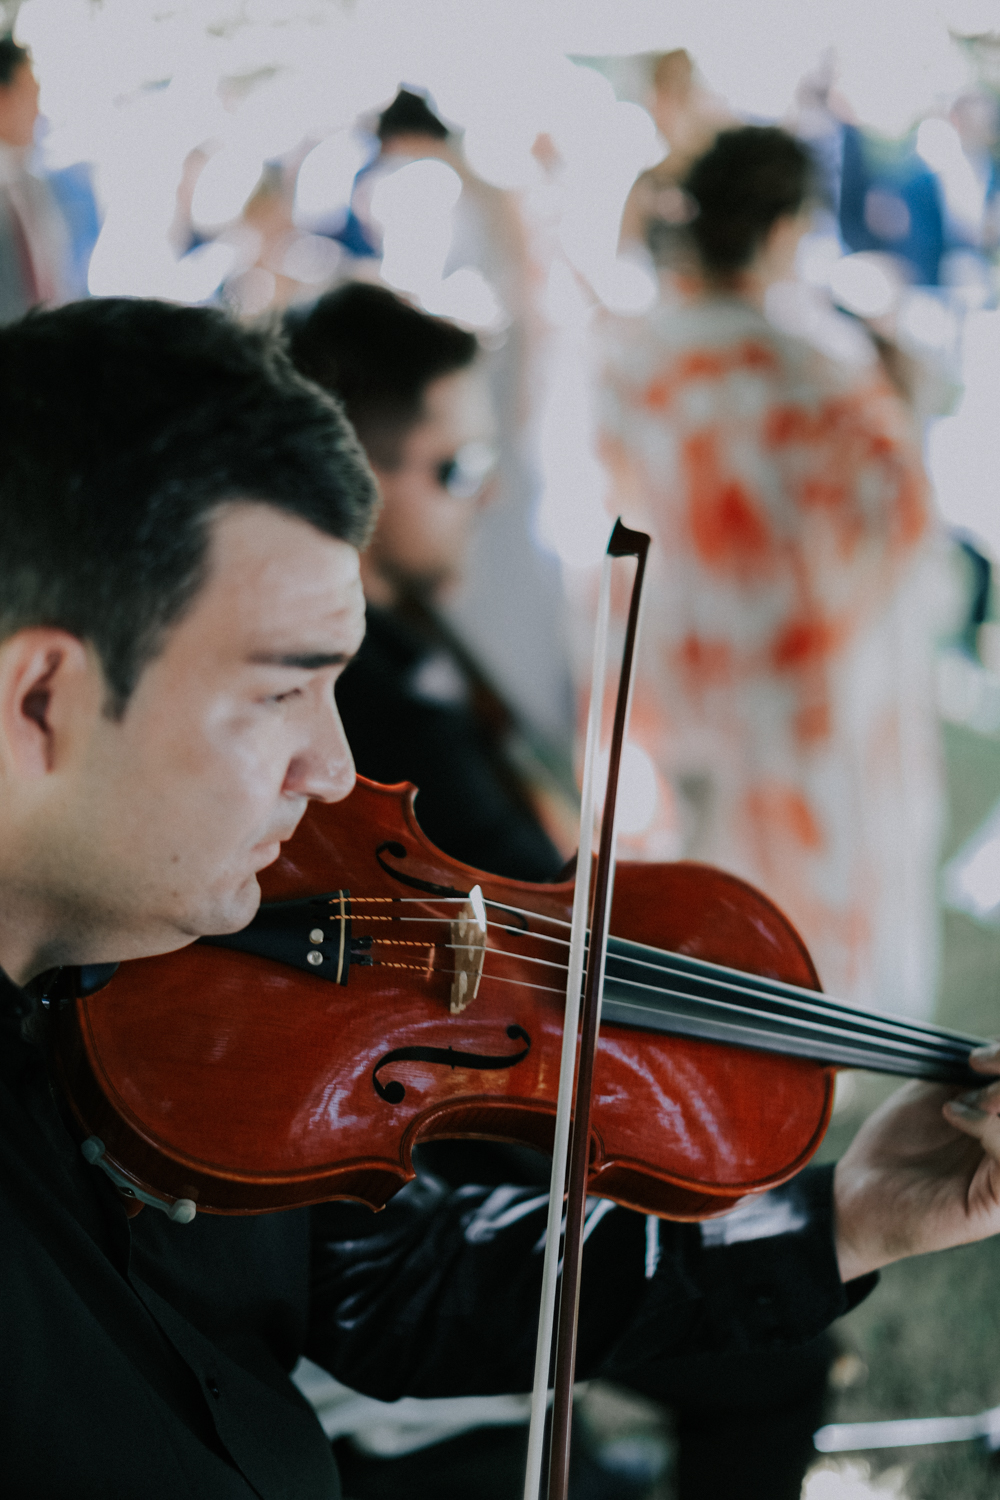 http://www.weddingamalfi.com/wp-content/uploads/Alessandro-and-Diego-wedding-music-classical-violin.jpg